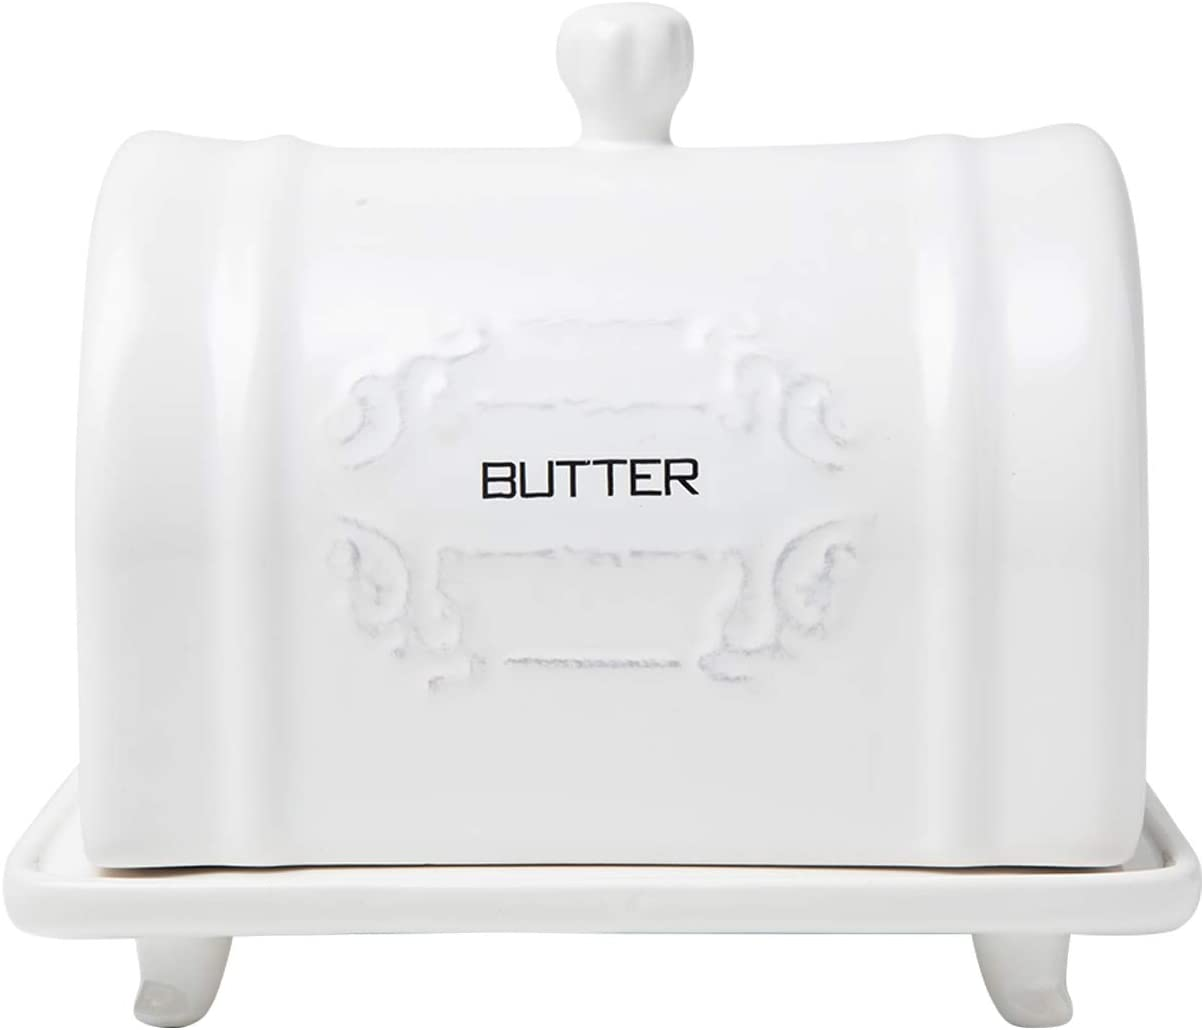 French Design Ceramic Butter Dish With Lid Vintage Ceramic Butter Holder Decorative Butter Keeper With Embossed French Country Style Design Convenient White Butter Container Amazon Ca Home Kitchen